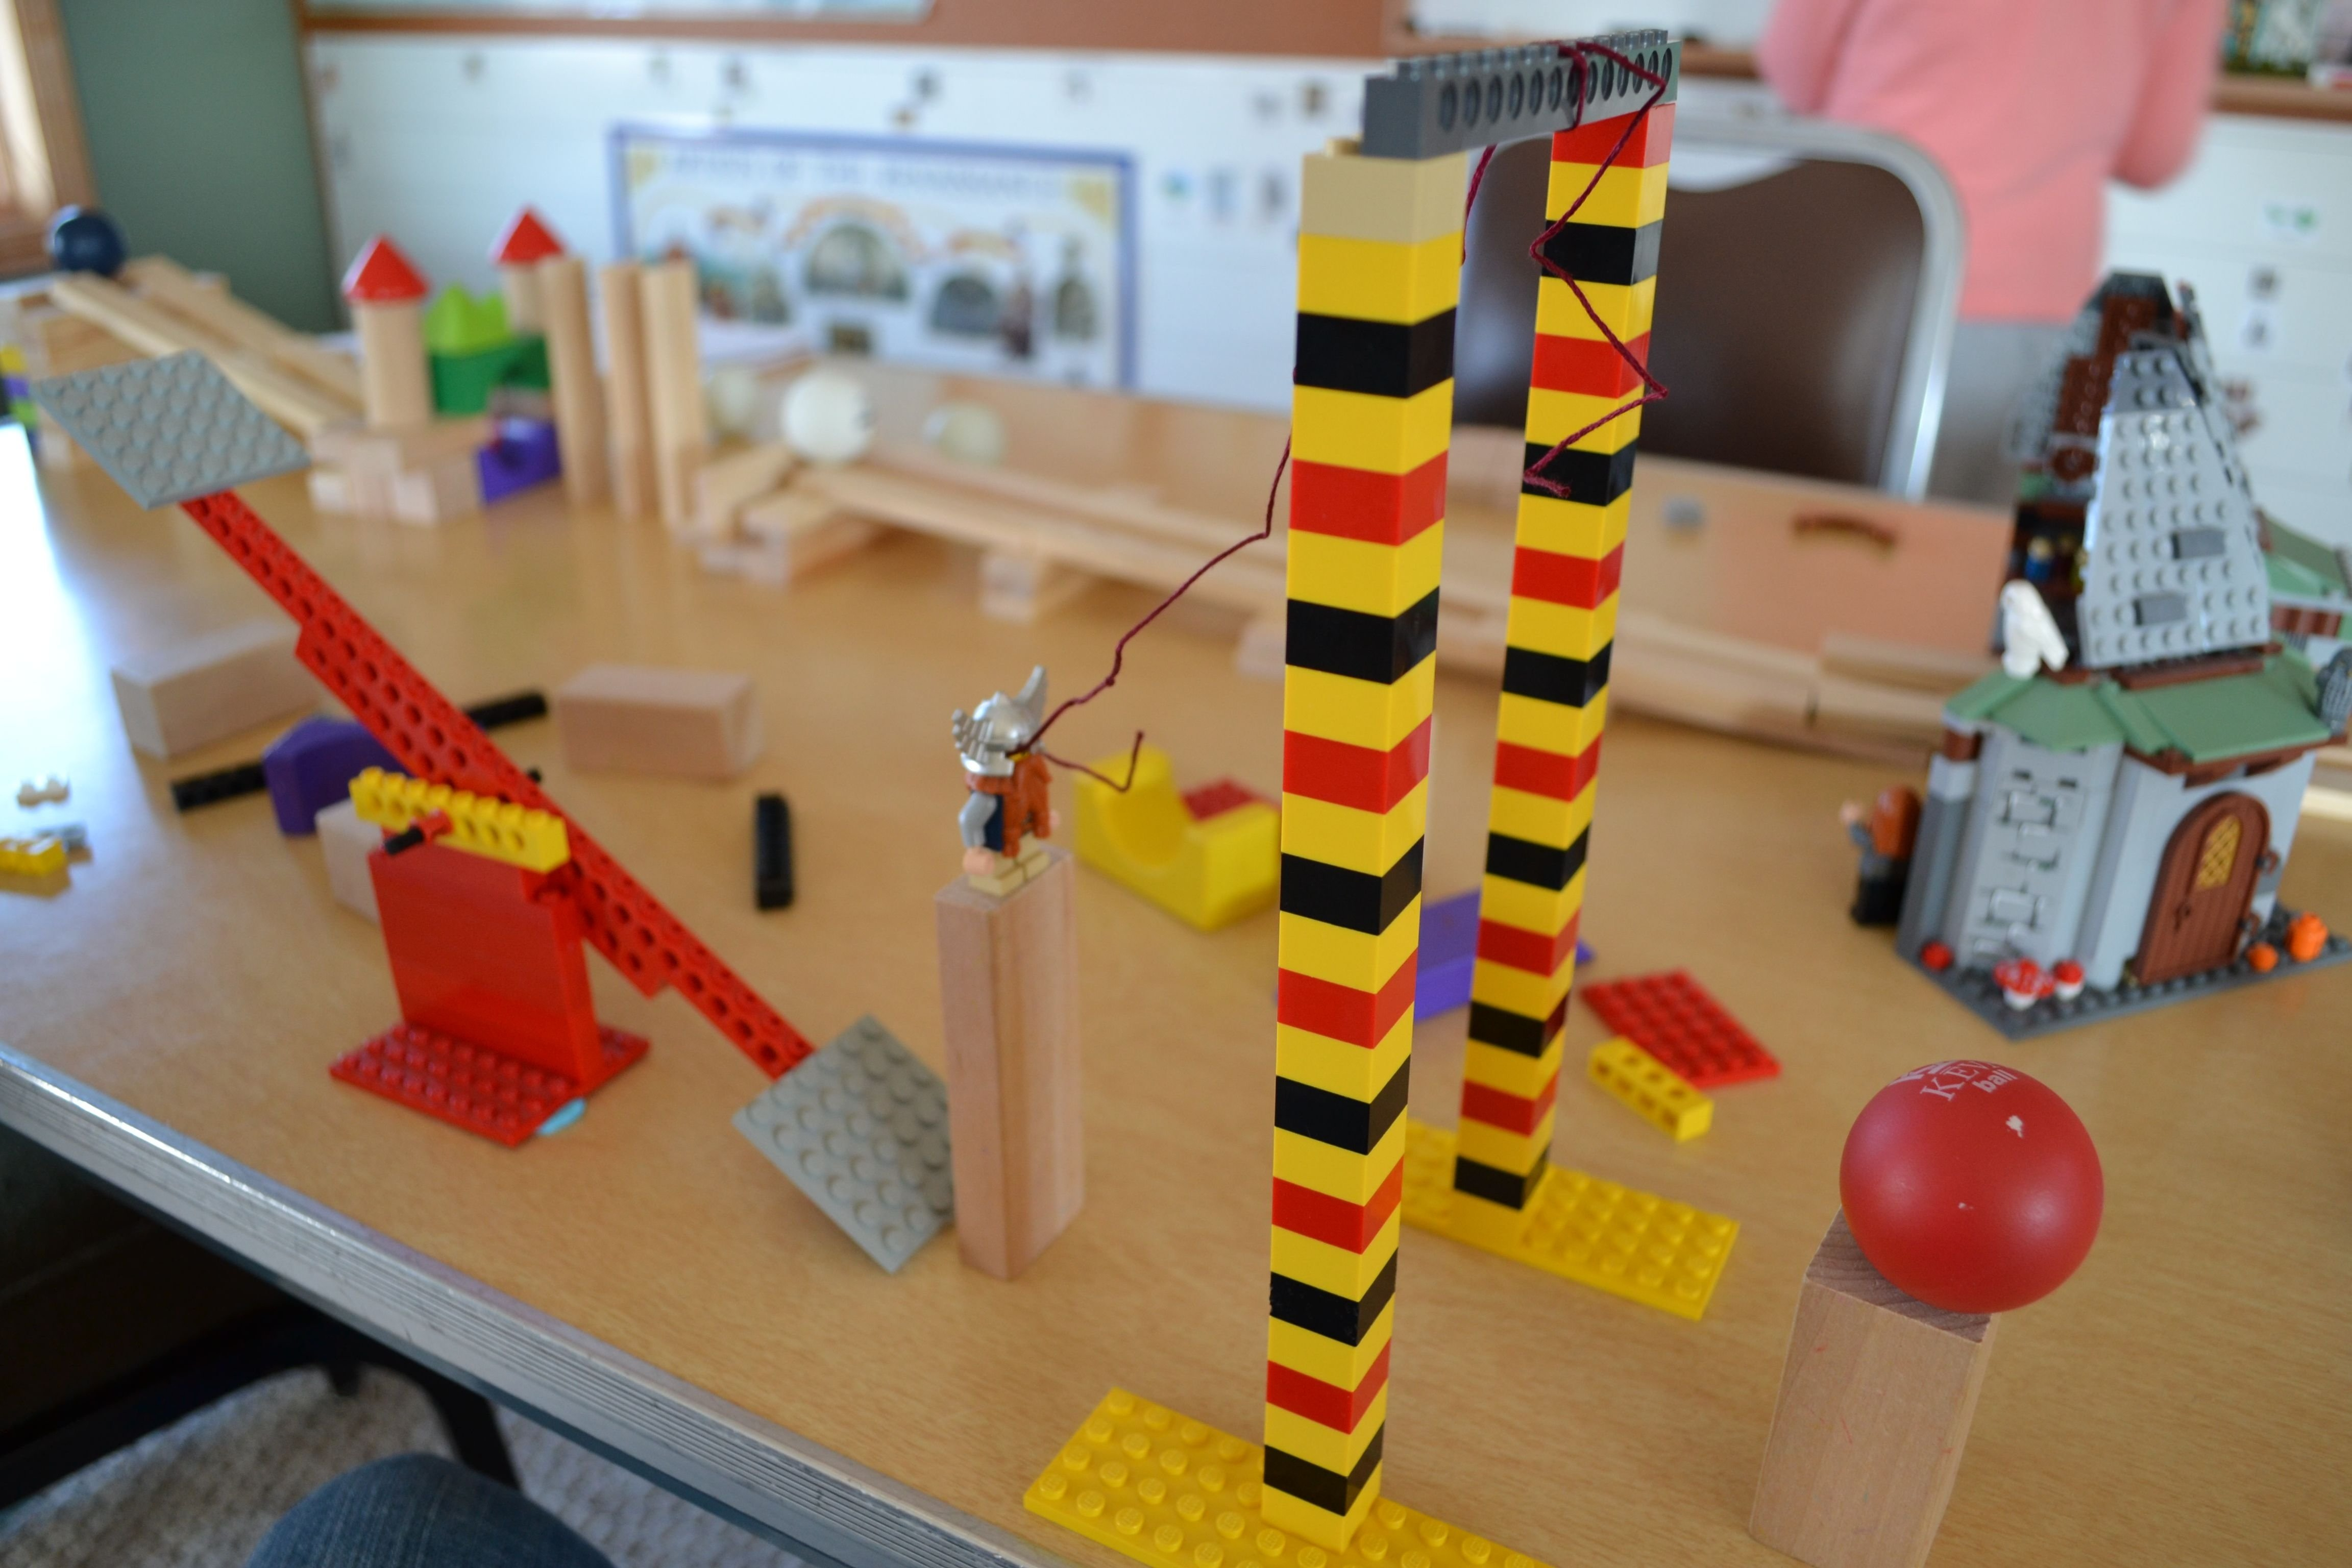 10 Most Recommended Ideas For Rube Goldberg Project rube goldberg projects simple machines science pinterest rube 1 2021